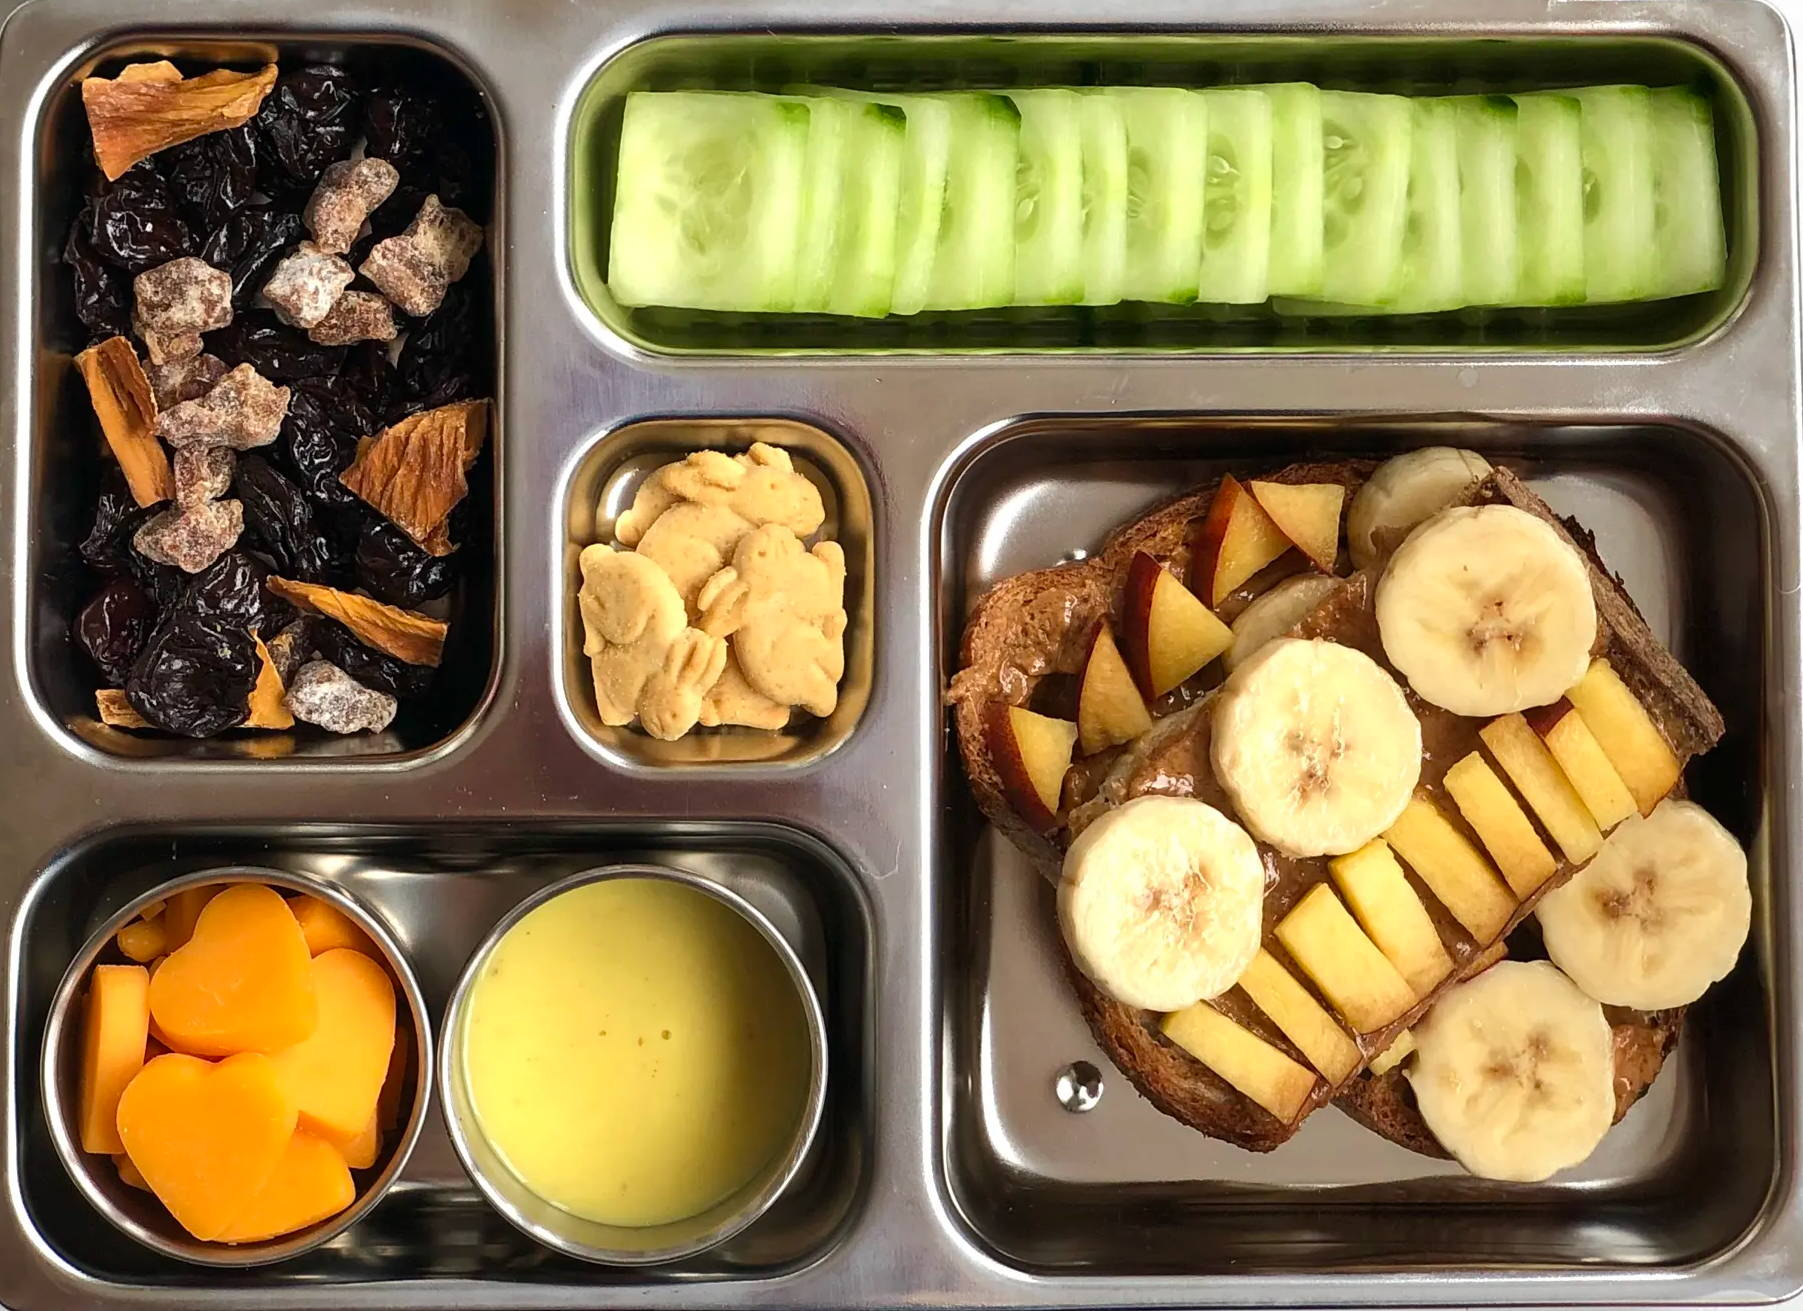 Sneak peek of a kid's quick and healthy school lunch containing Sourdough Toasts with Almond Butter, Banana, & Peaches, Trail Mix, English Cucumber Squares, Organic Honey Mustard Dressing, Cheddar Cheese Shapes, Mini Graham Crackers.